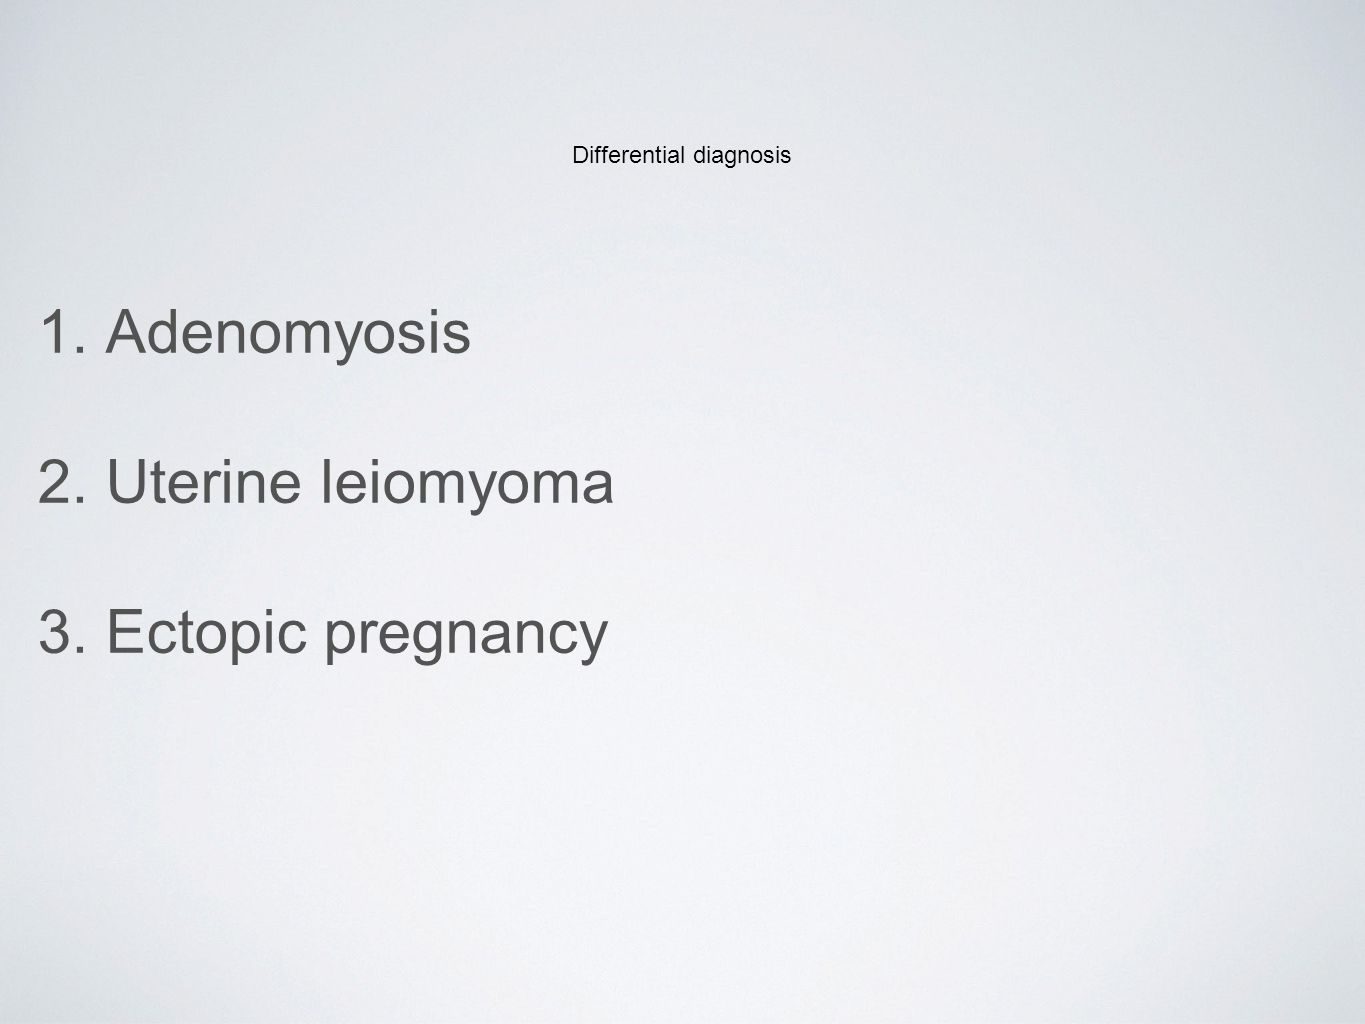 Differential diagnosis 1. Adenomyosis 2. Uterine leiomyoma 3. Ectopic pregnancy